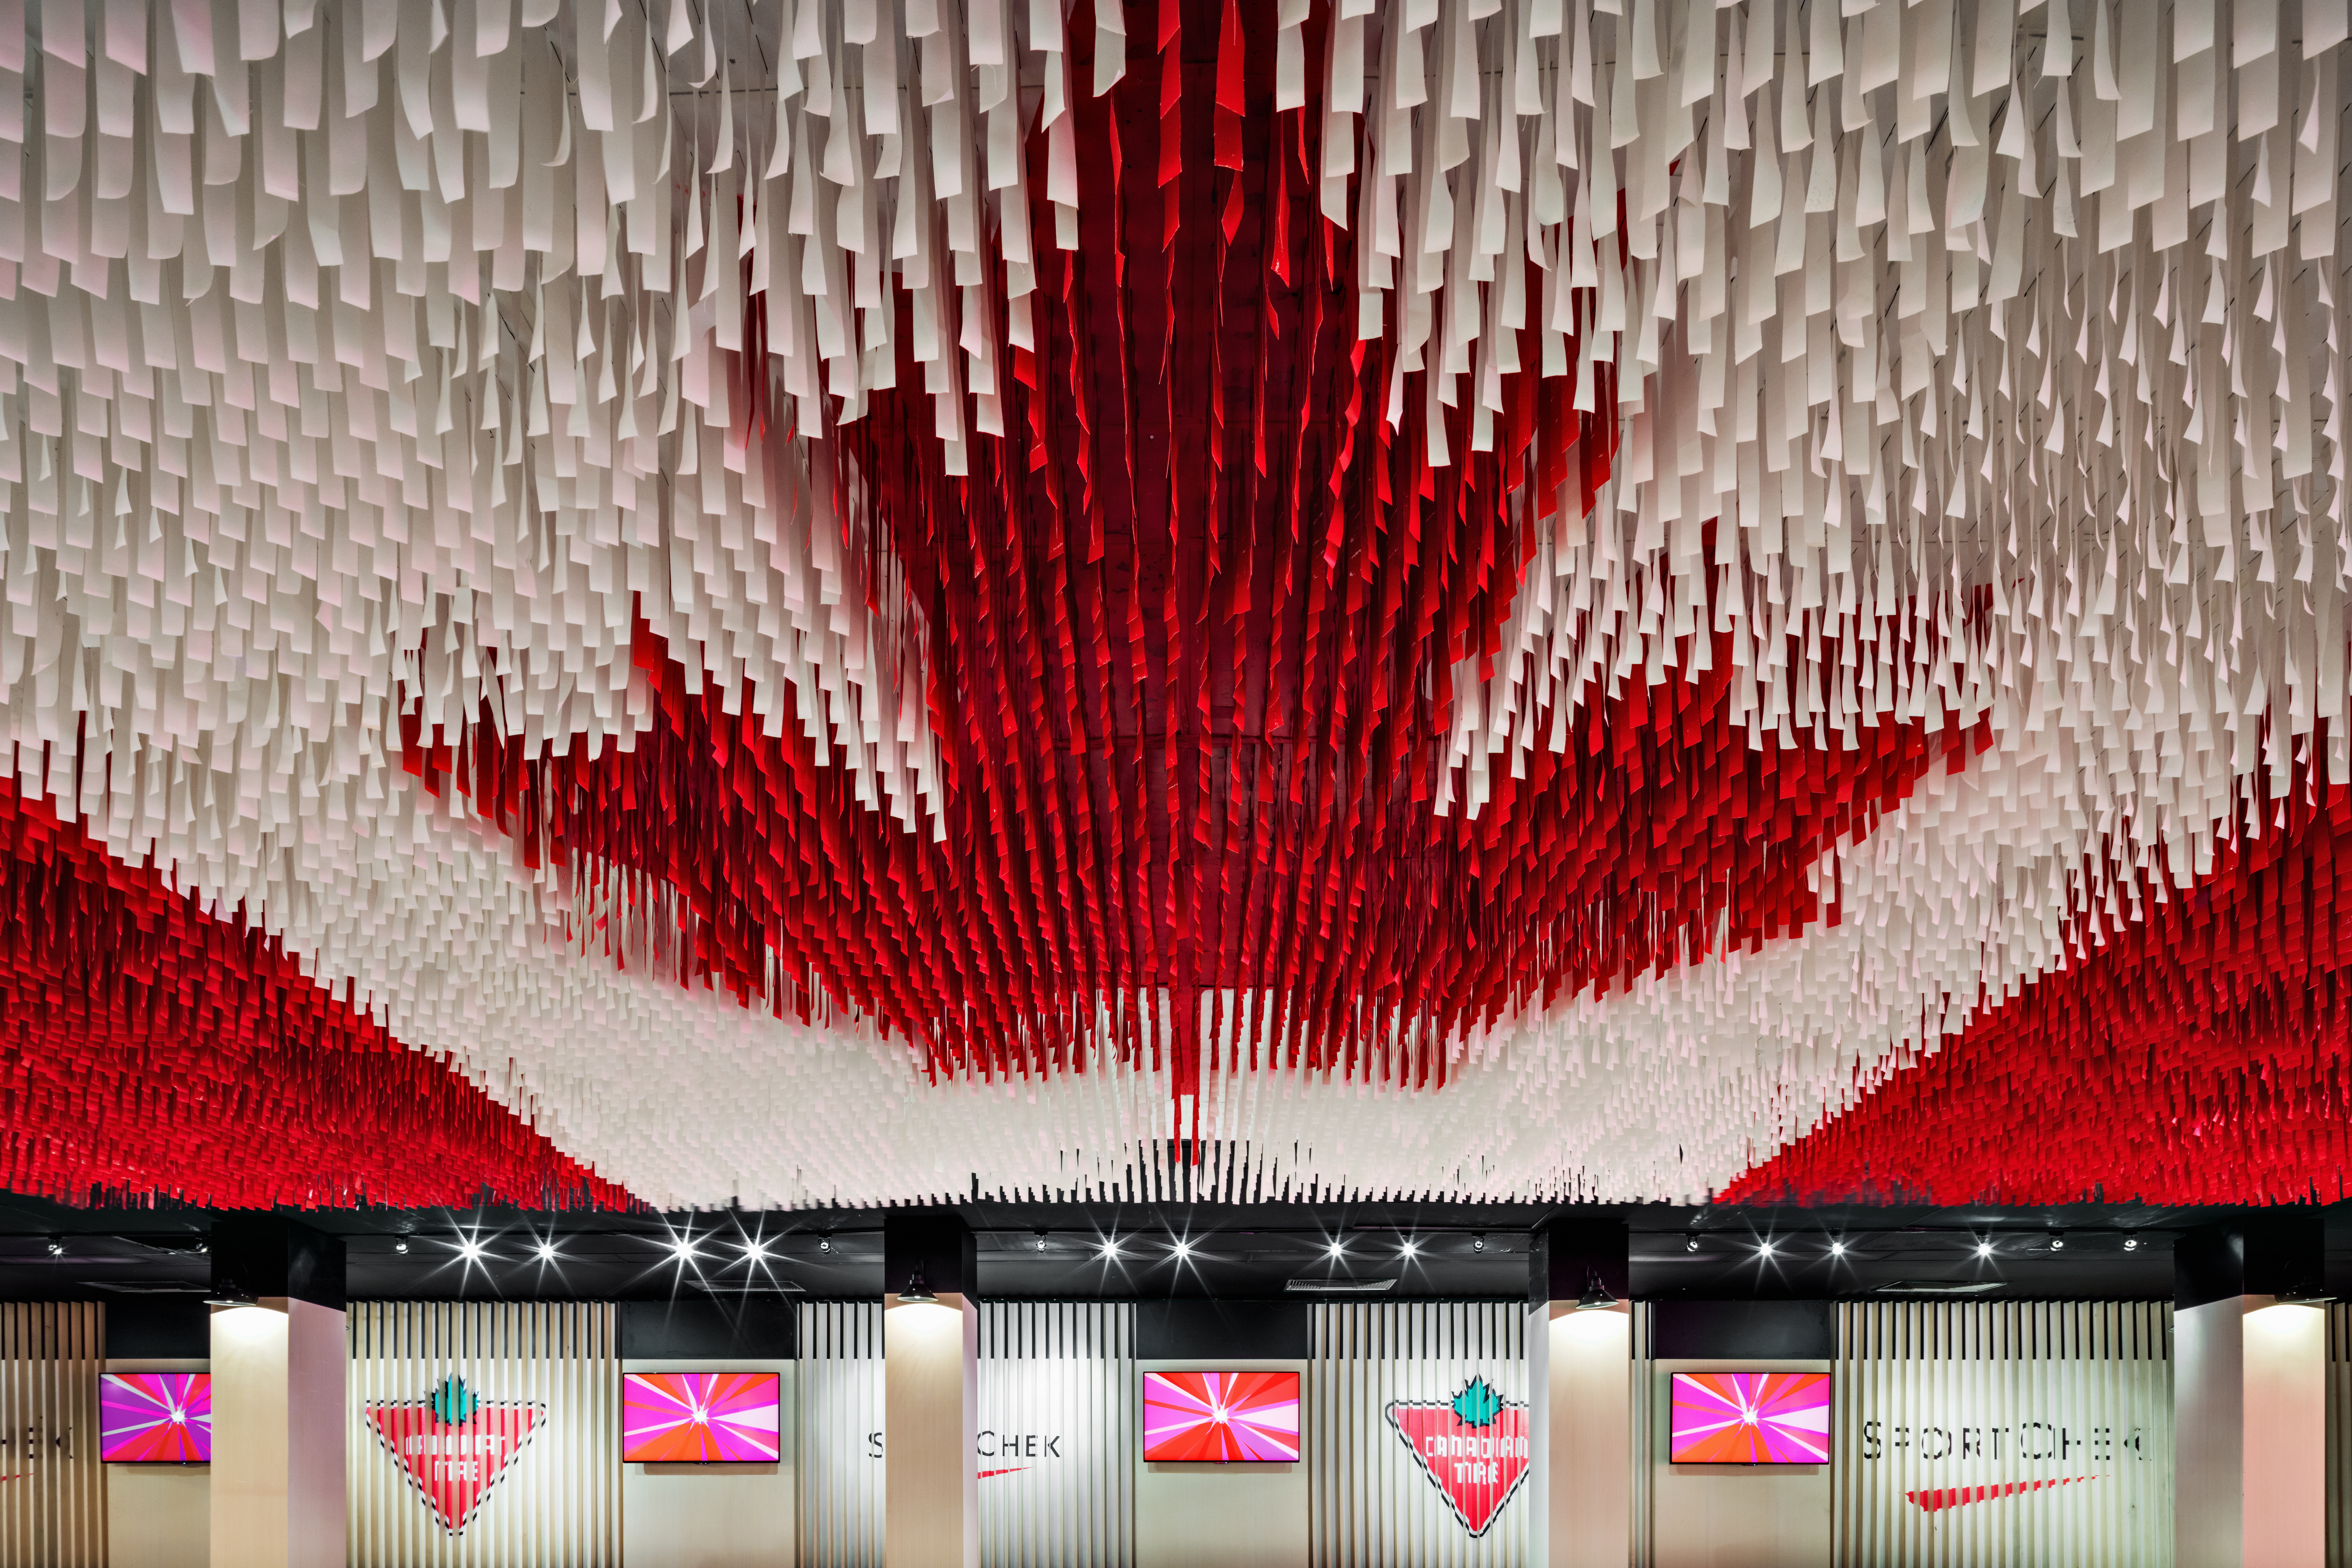 This deconstructed Canadian flag is made up of hundreds of hanging ribbons and is suspended from the ceiling of the Celebration Lounge.